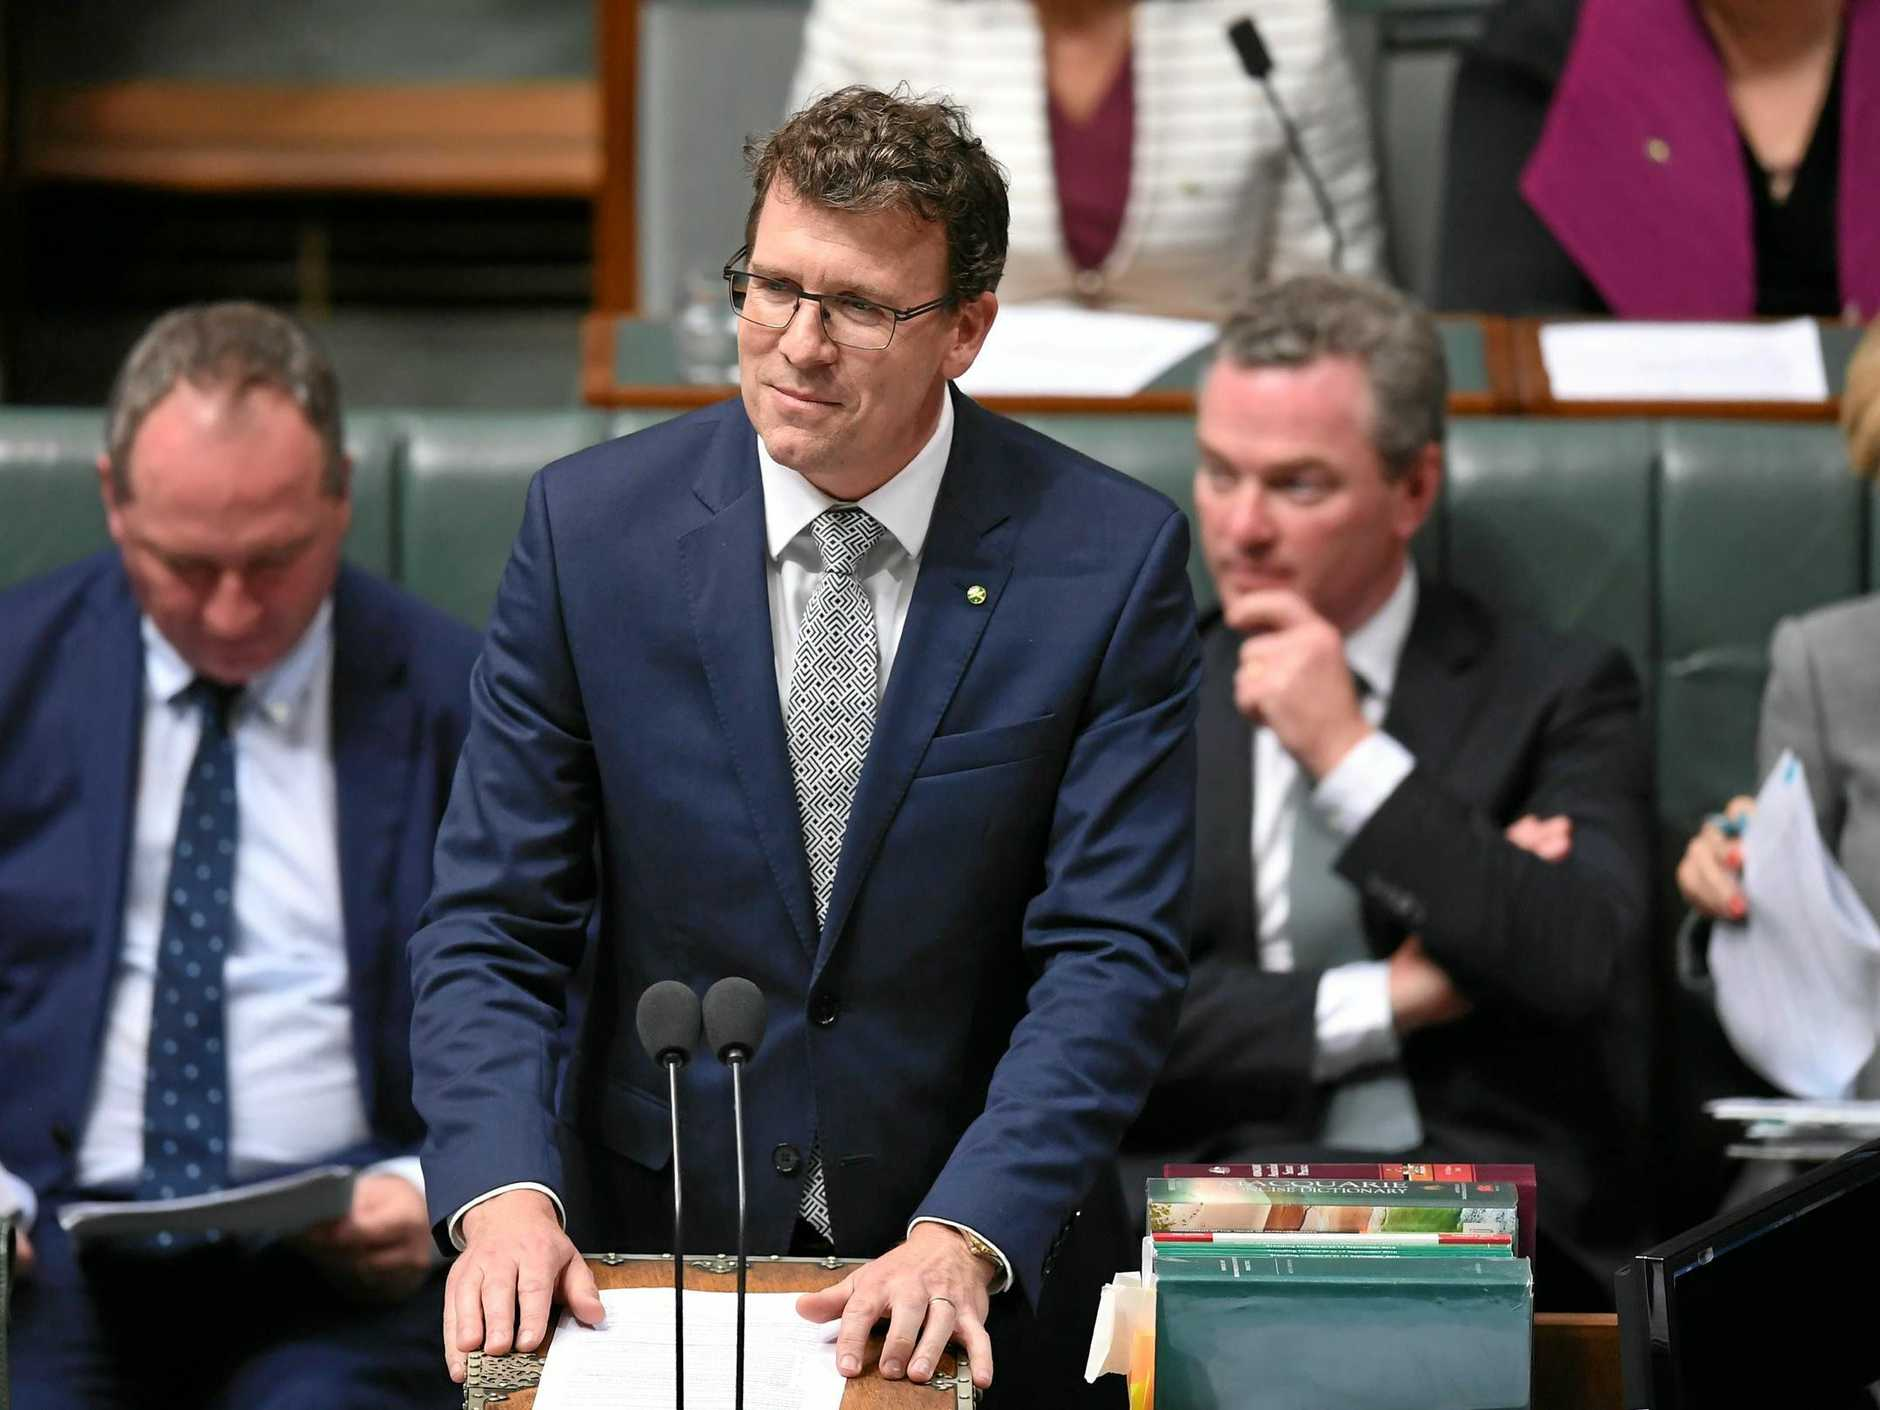 DIRE WARNING: Human Services Minister Alan Tudge laments that the region has the second highest youth unemployment rate in Queensland.